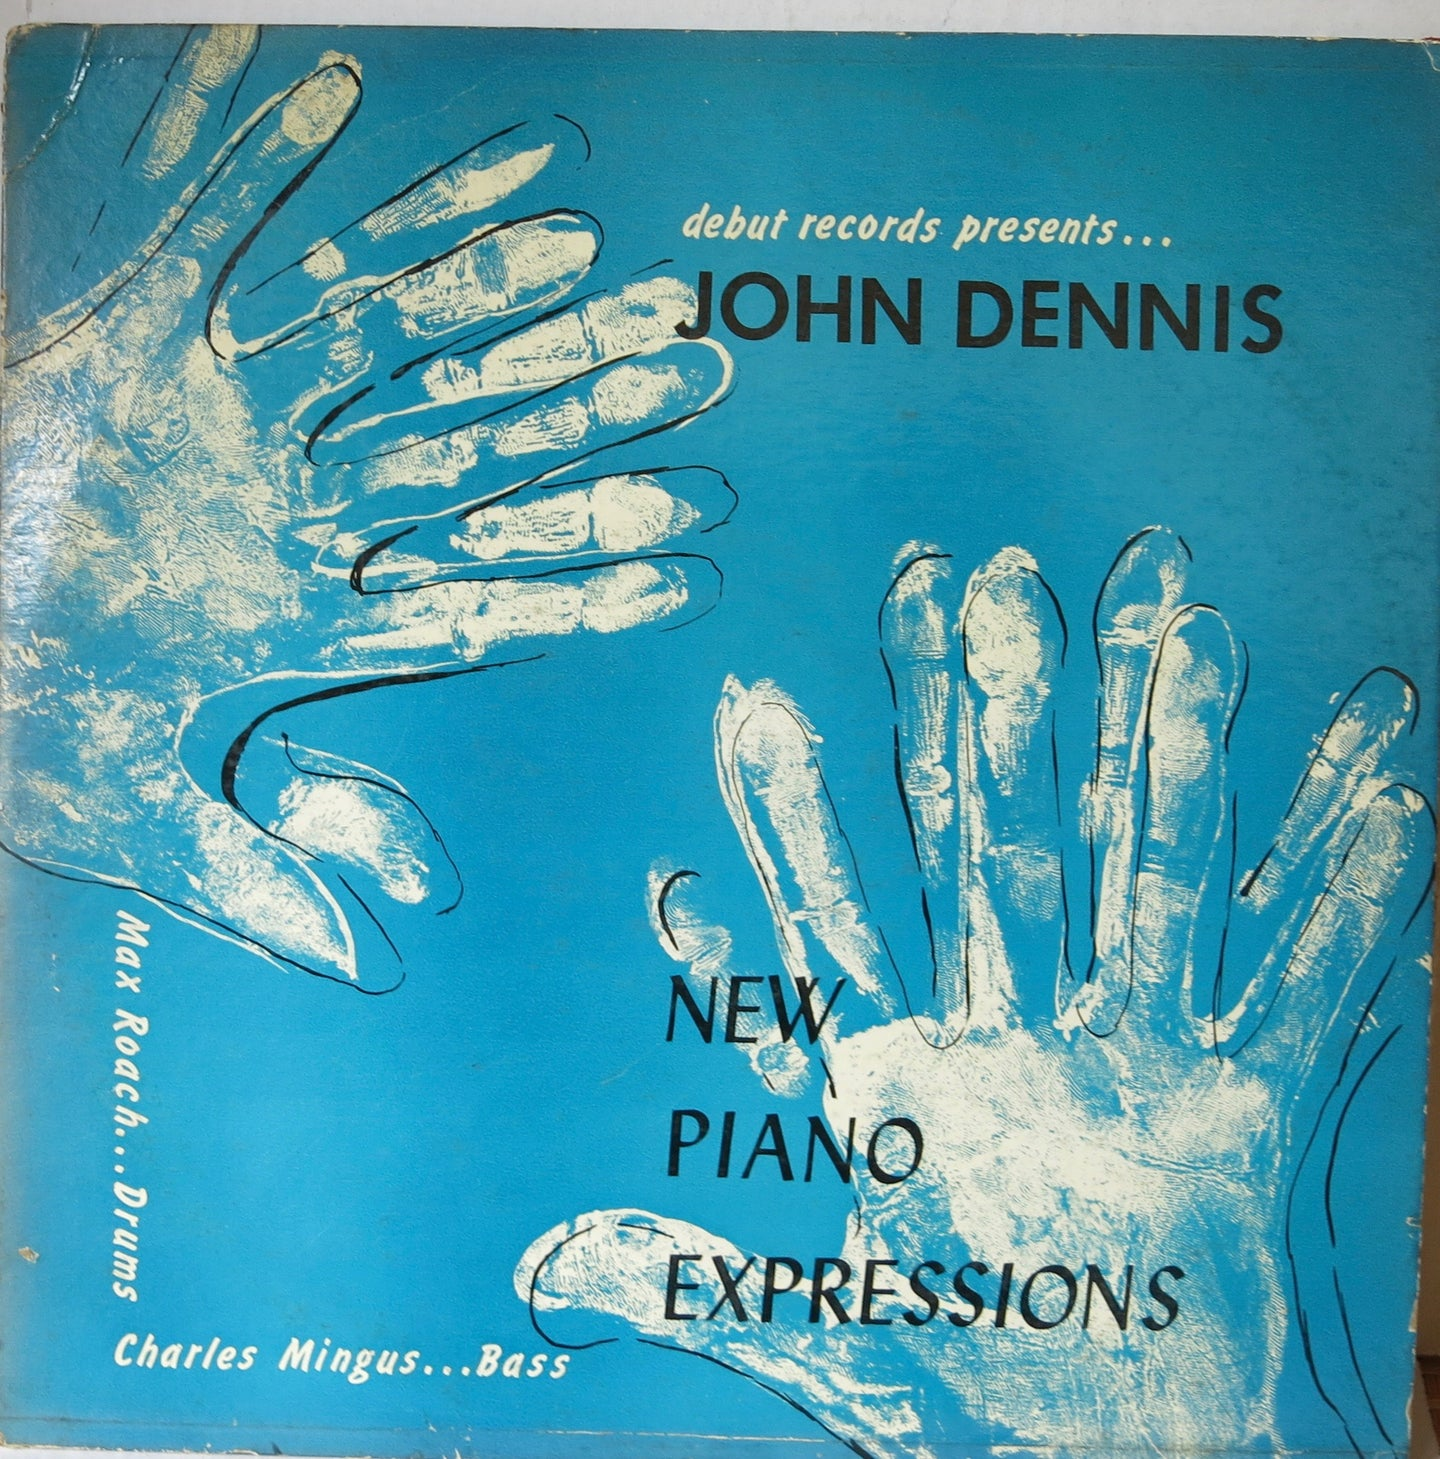 John Dennis ‎– New Piano Expressions - Debut